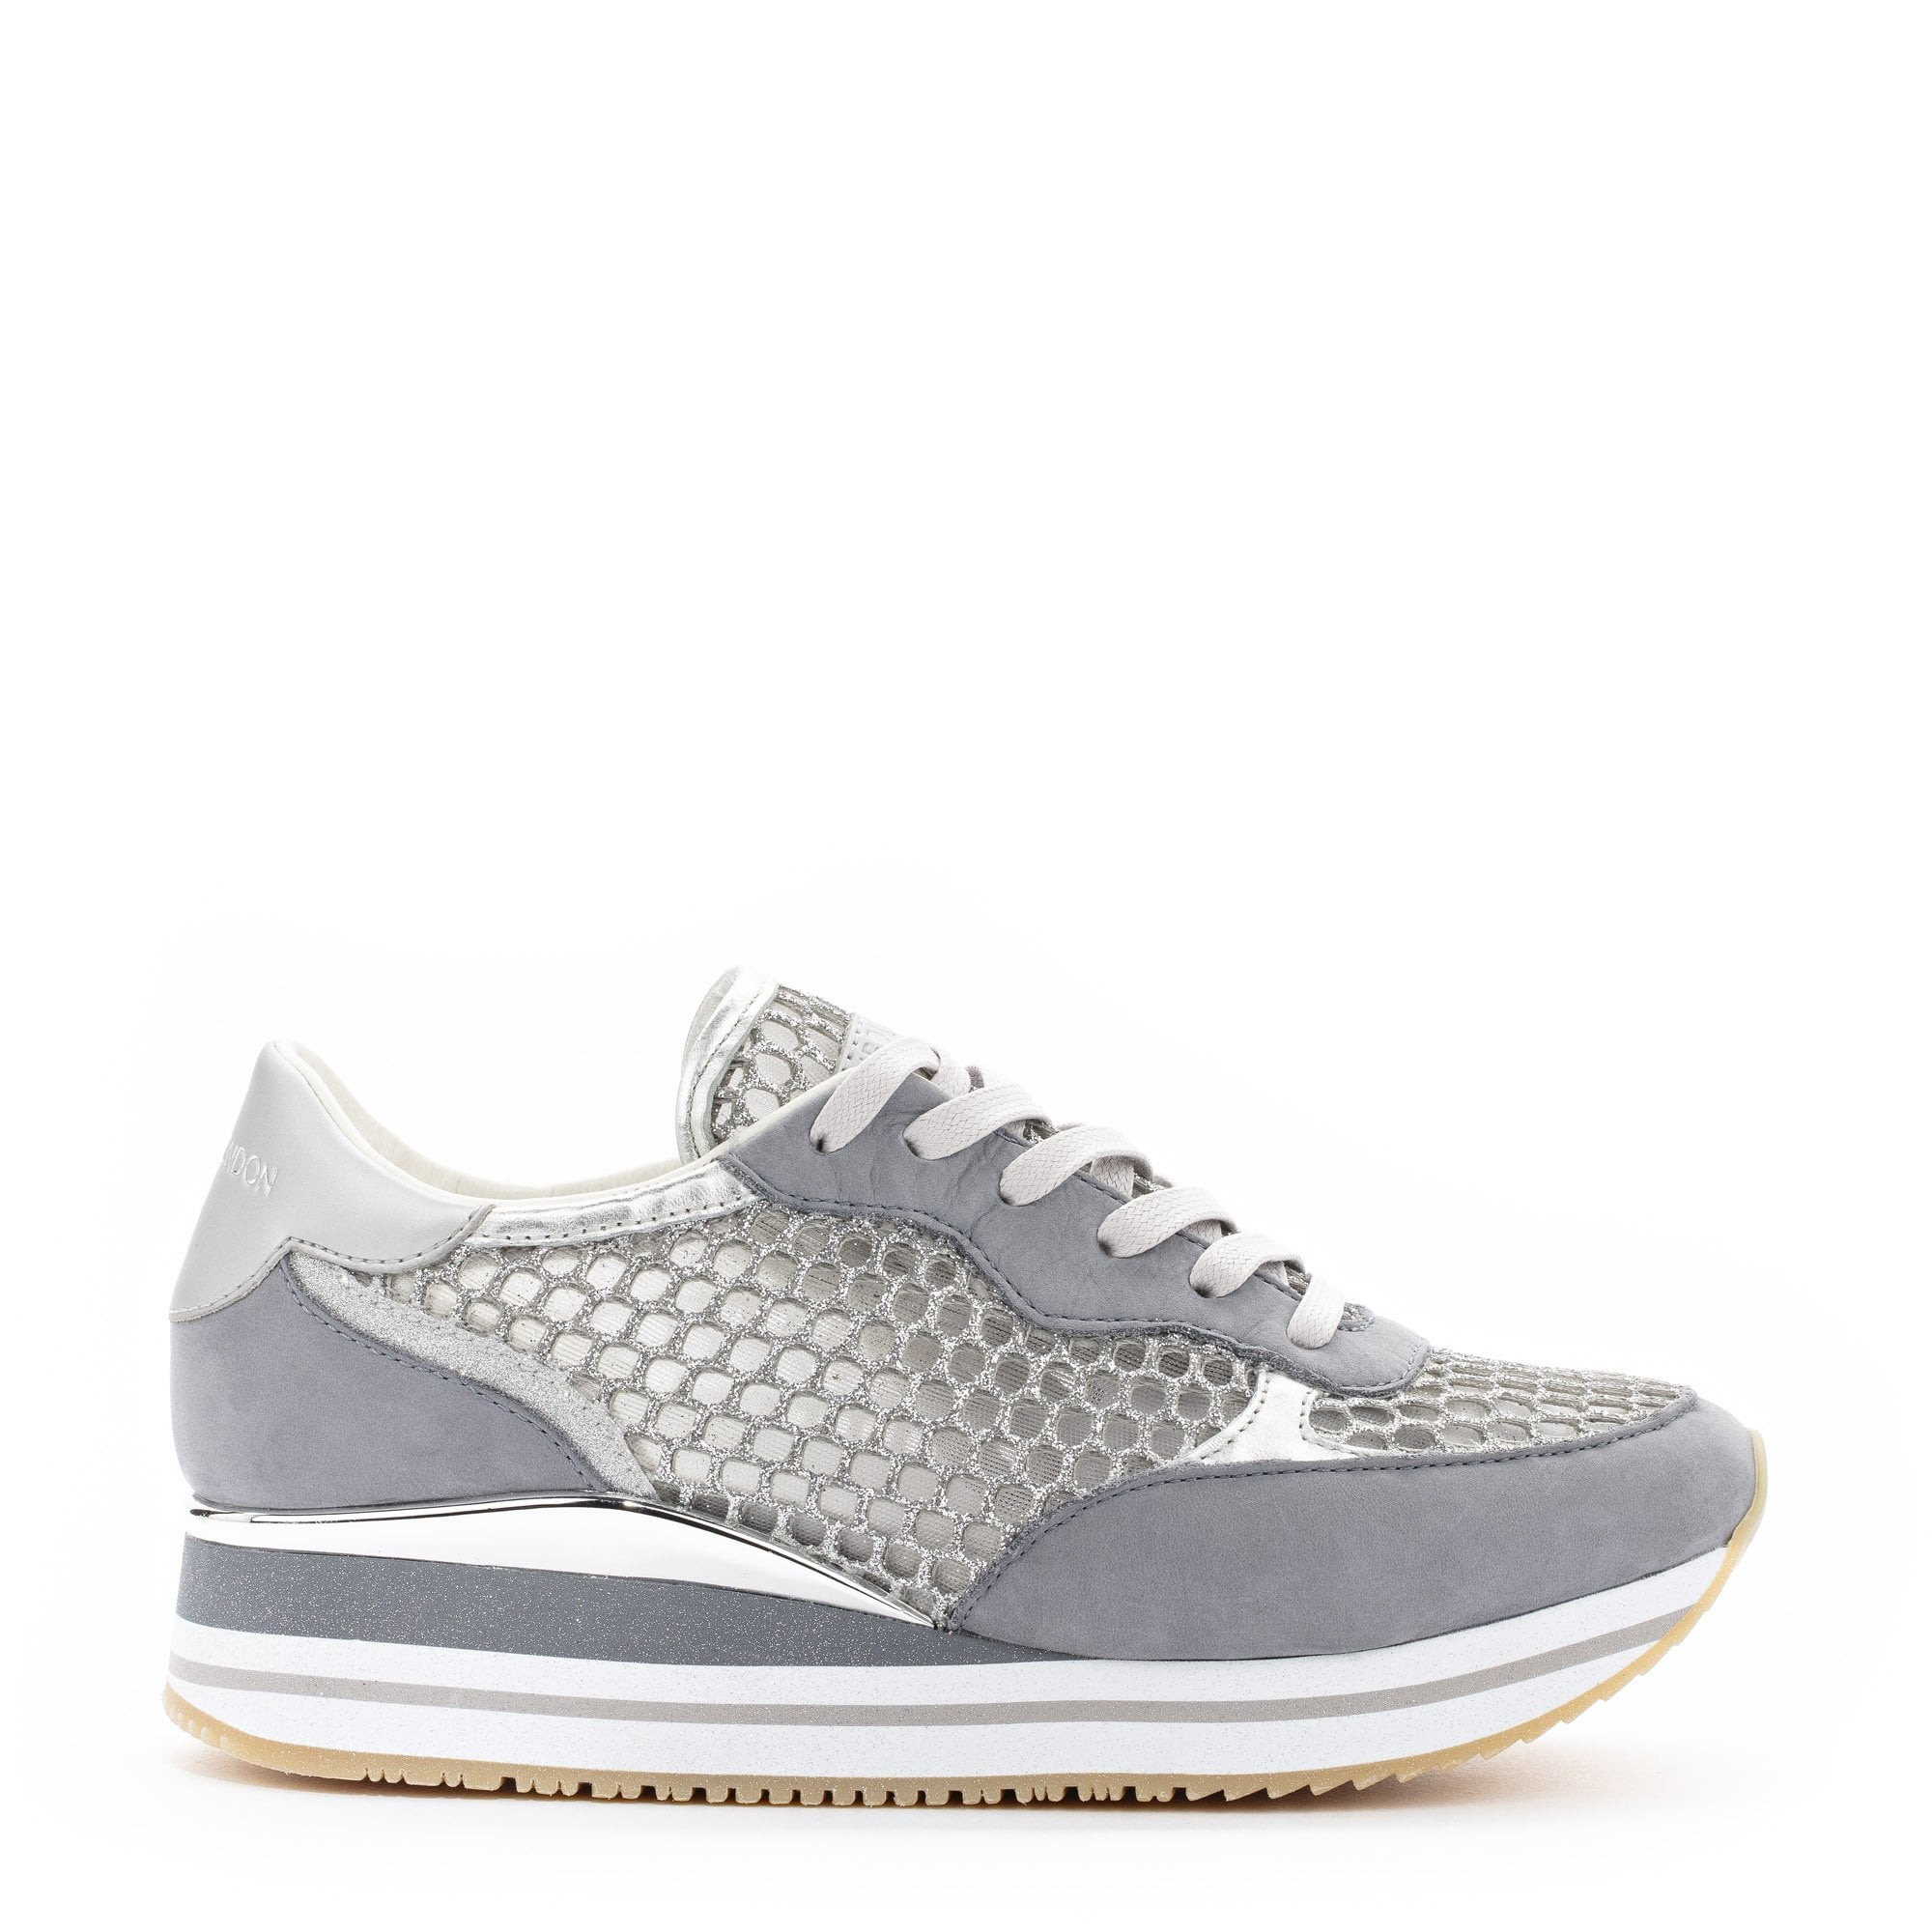 Crime London Dynamic Trainers in Silver